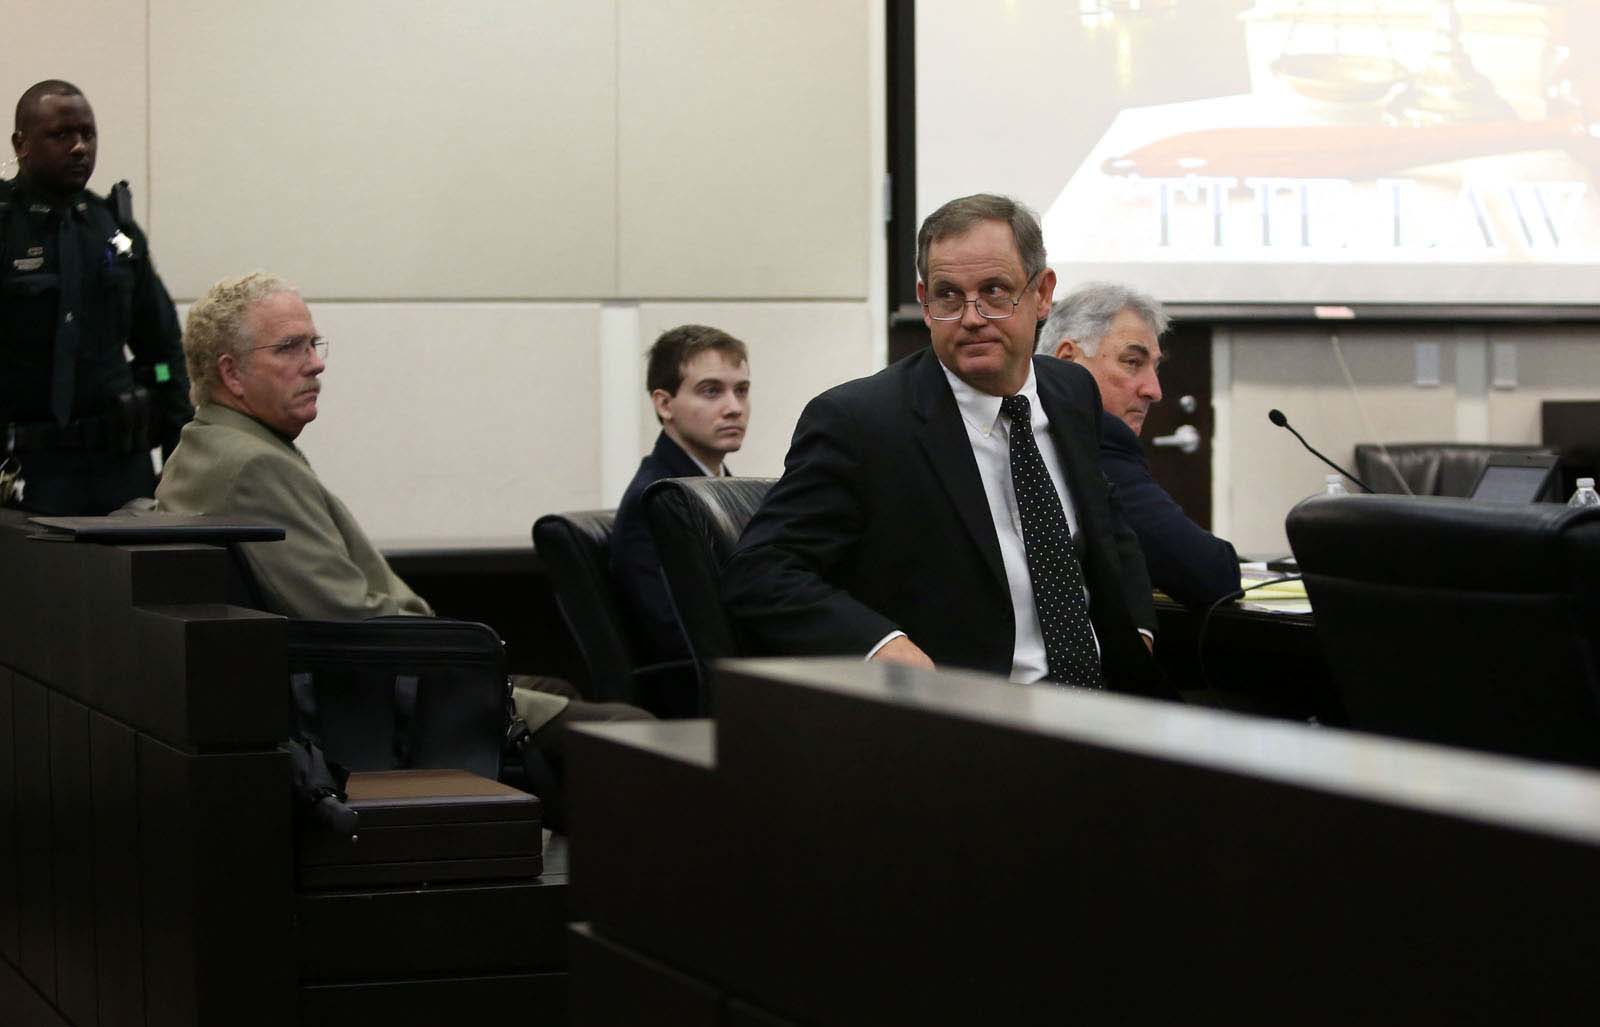 Lead defense attorney Michael Ruppert looks to the gallery following his request for a mistrial during Pedro Bravo's murder trial in courtroom 1B of the Alachua County Criminal Justice Center Friday, August 15, 2014.  Bravo is accused of killing University of Florida student Christian Aguilar.  (Doug Finger/The Gainesville Sun/Pool)